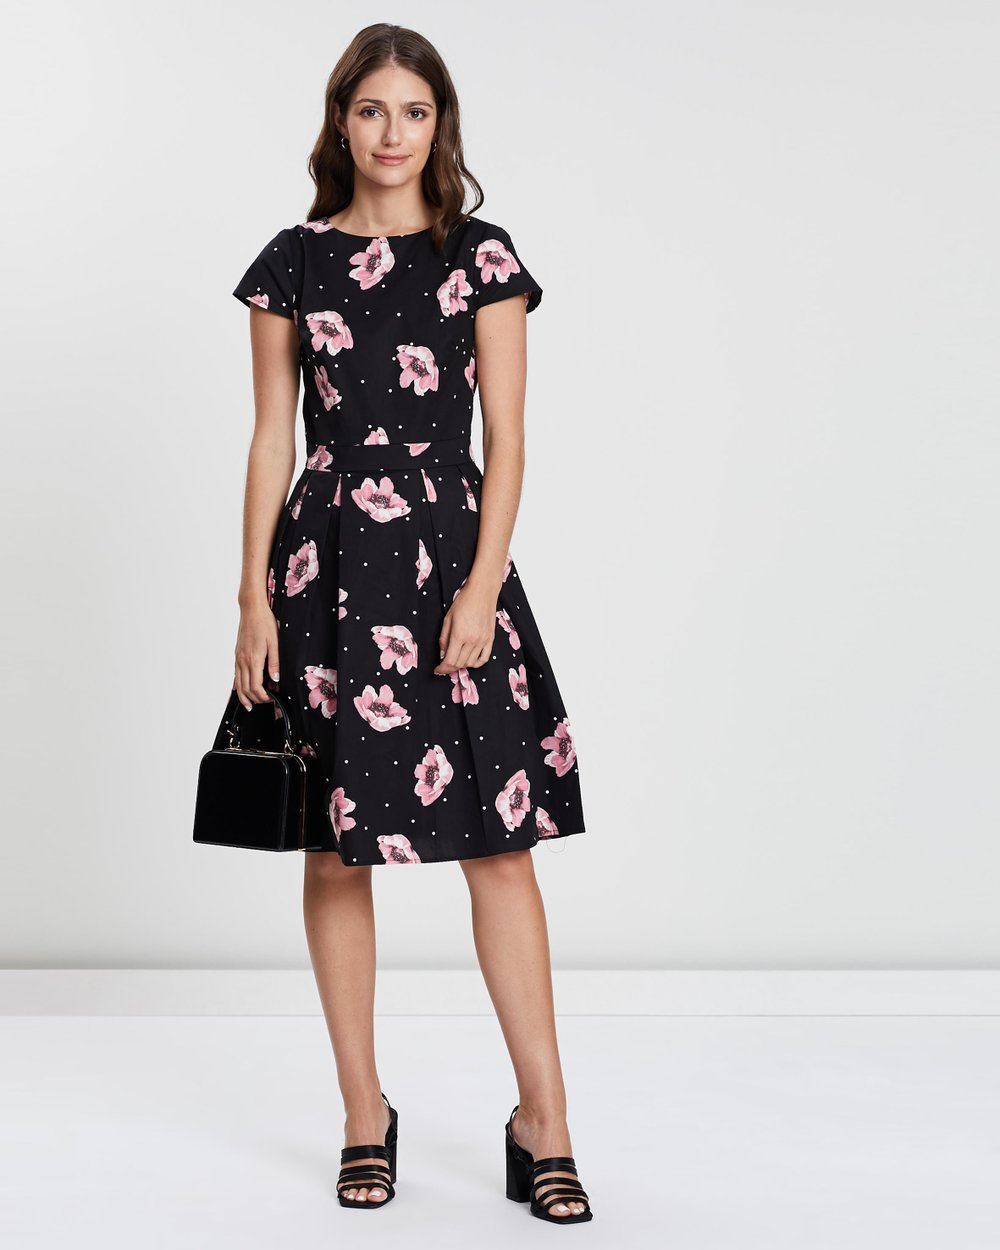 96ccfb34198 Sateen Spotted Floral Tea Dress